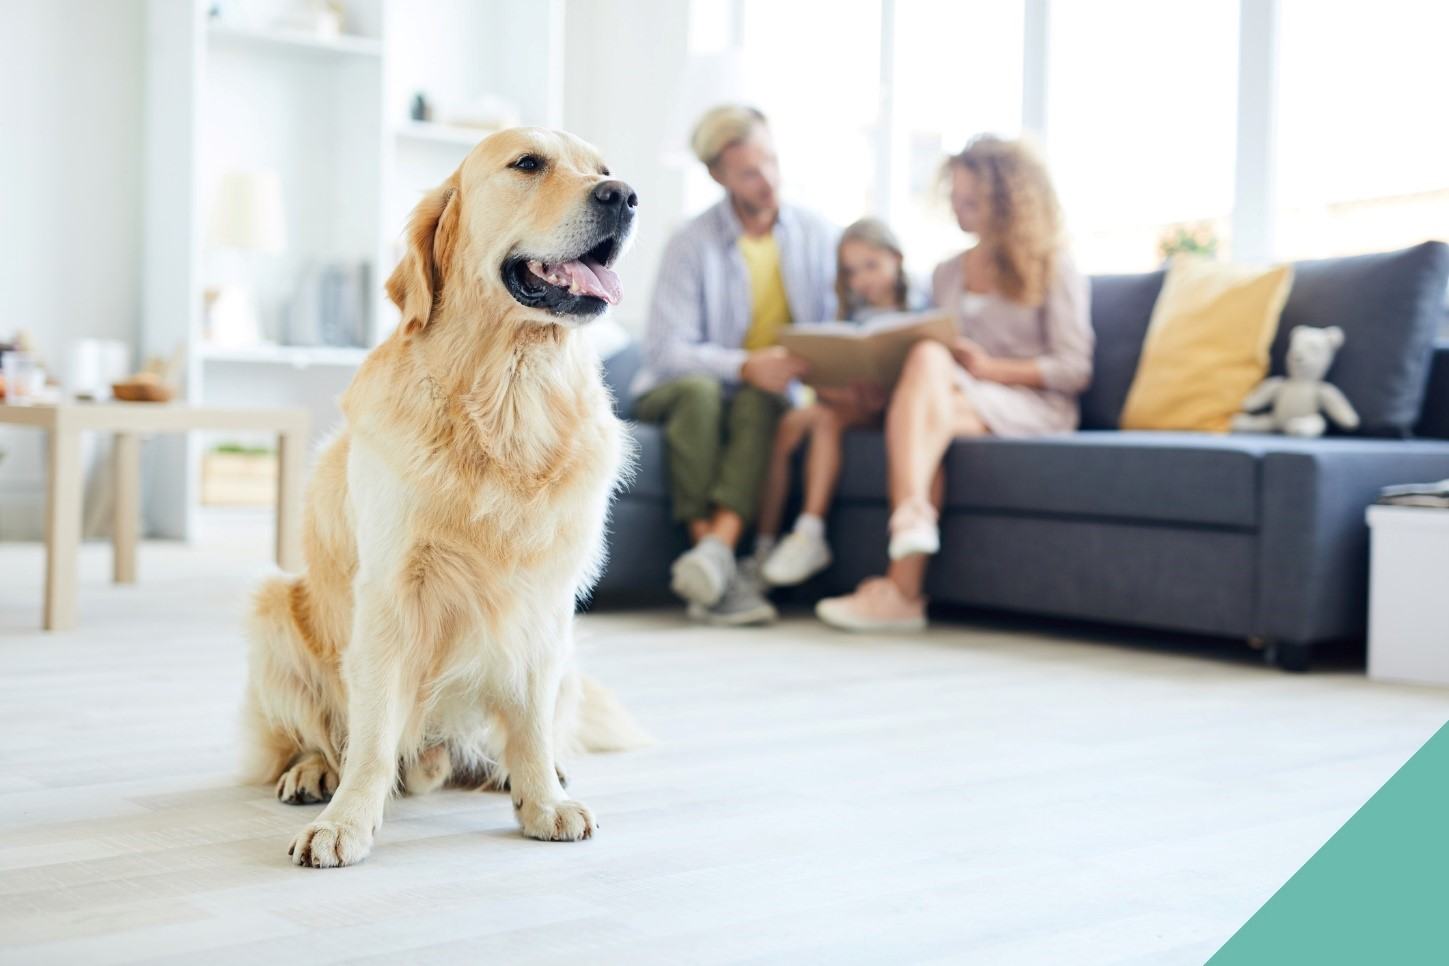 Preparing your pet for home life changes